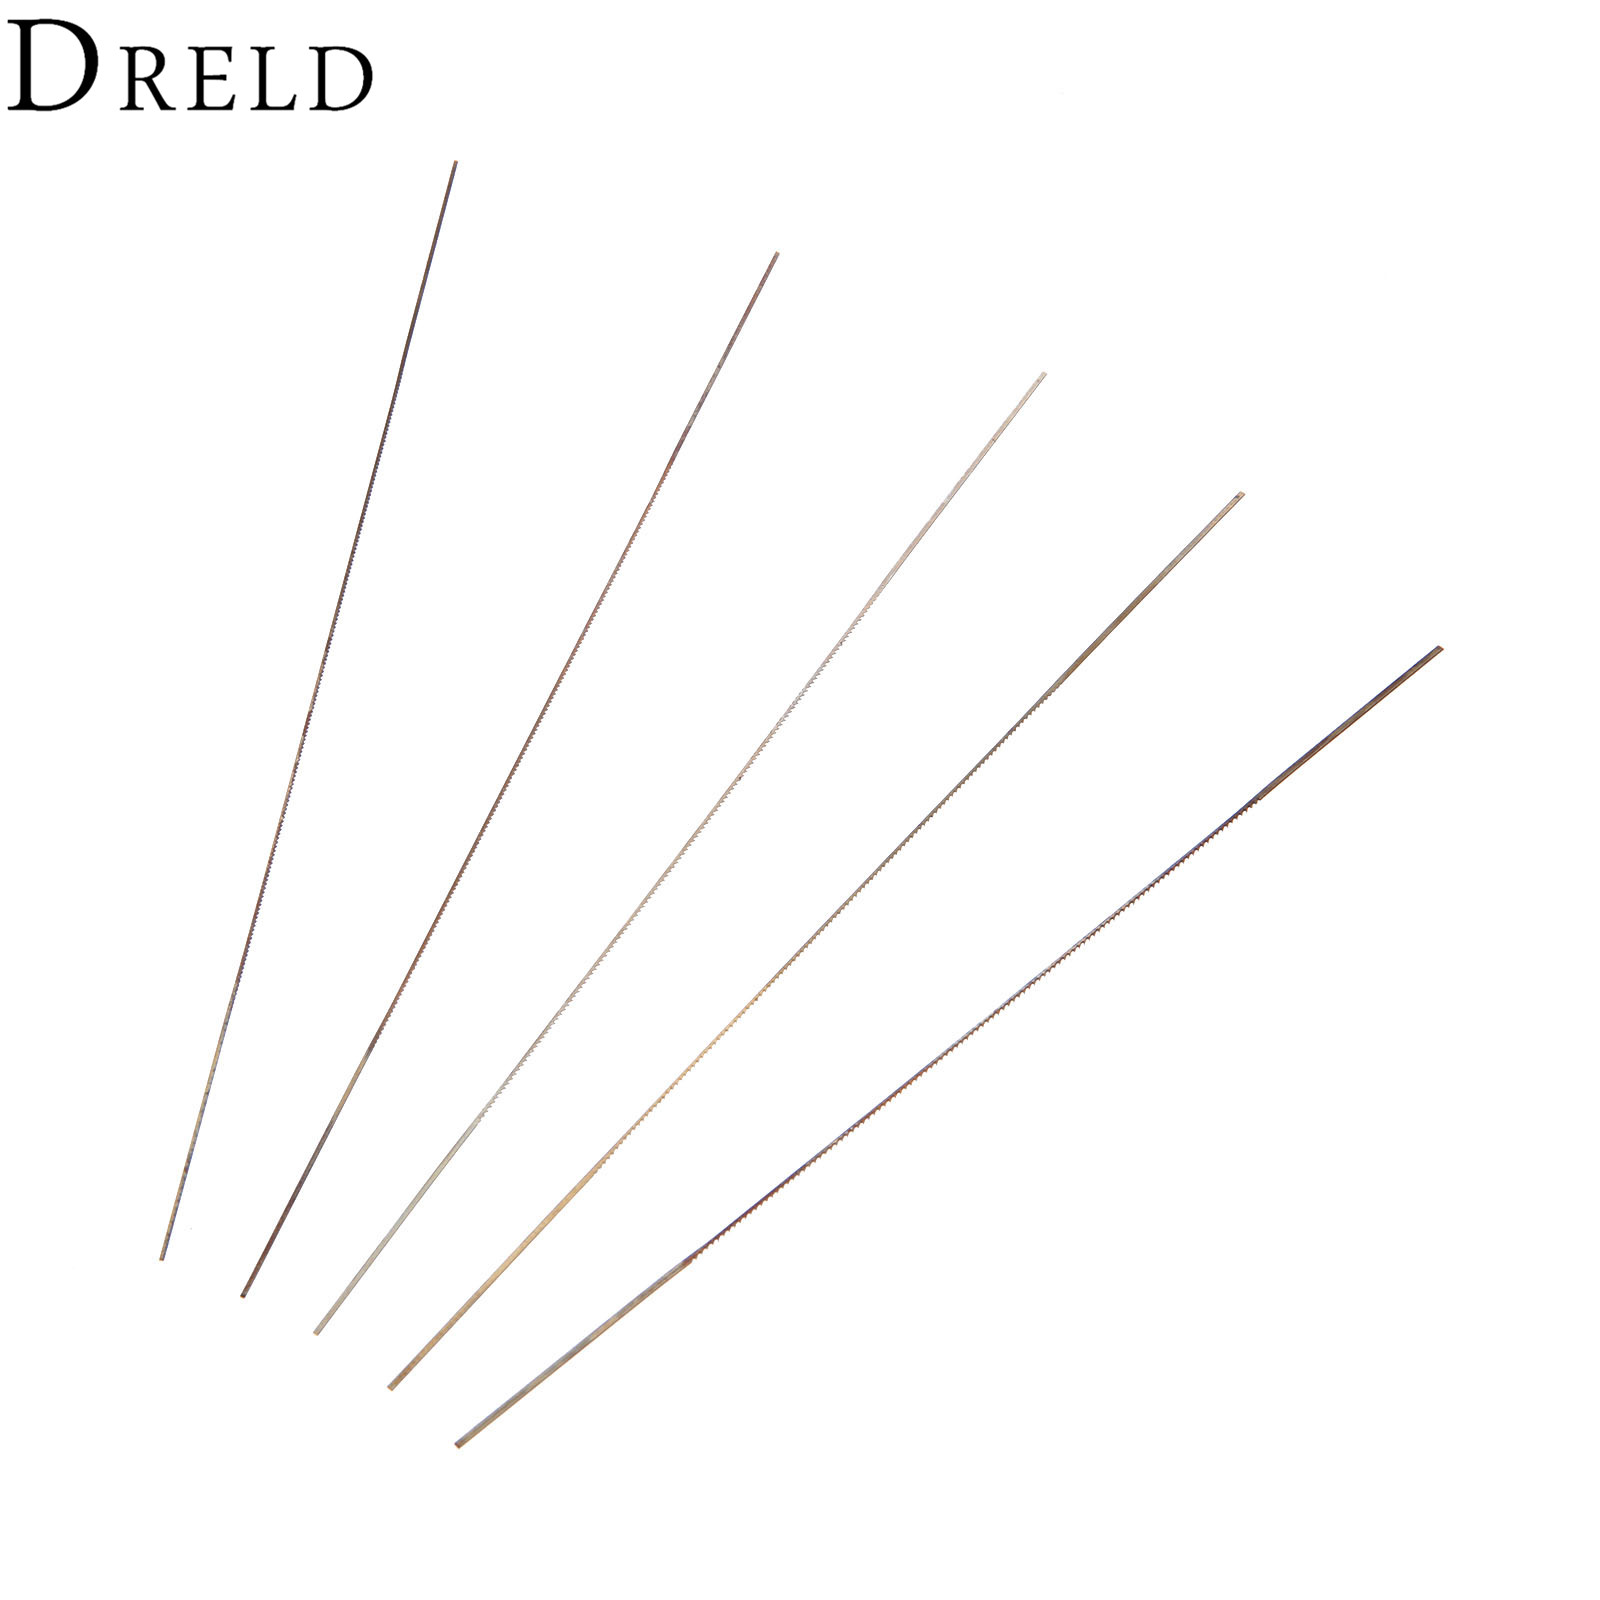 DRELD 5Pcs 130mm Scroll Saw Blades For Wood Metal Cutting 0#/1#/2#/4#/6# Fine-toothed Jig Saw Blades Woodworking Tool Power Tool